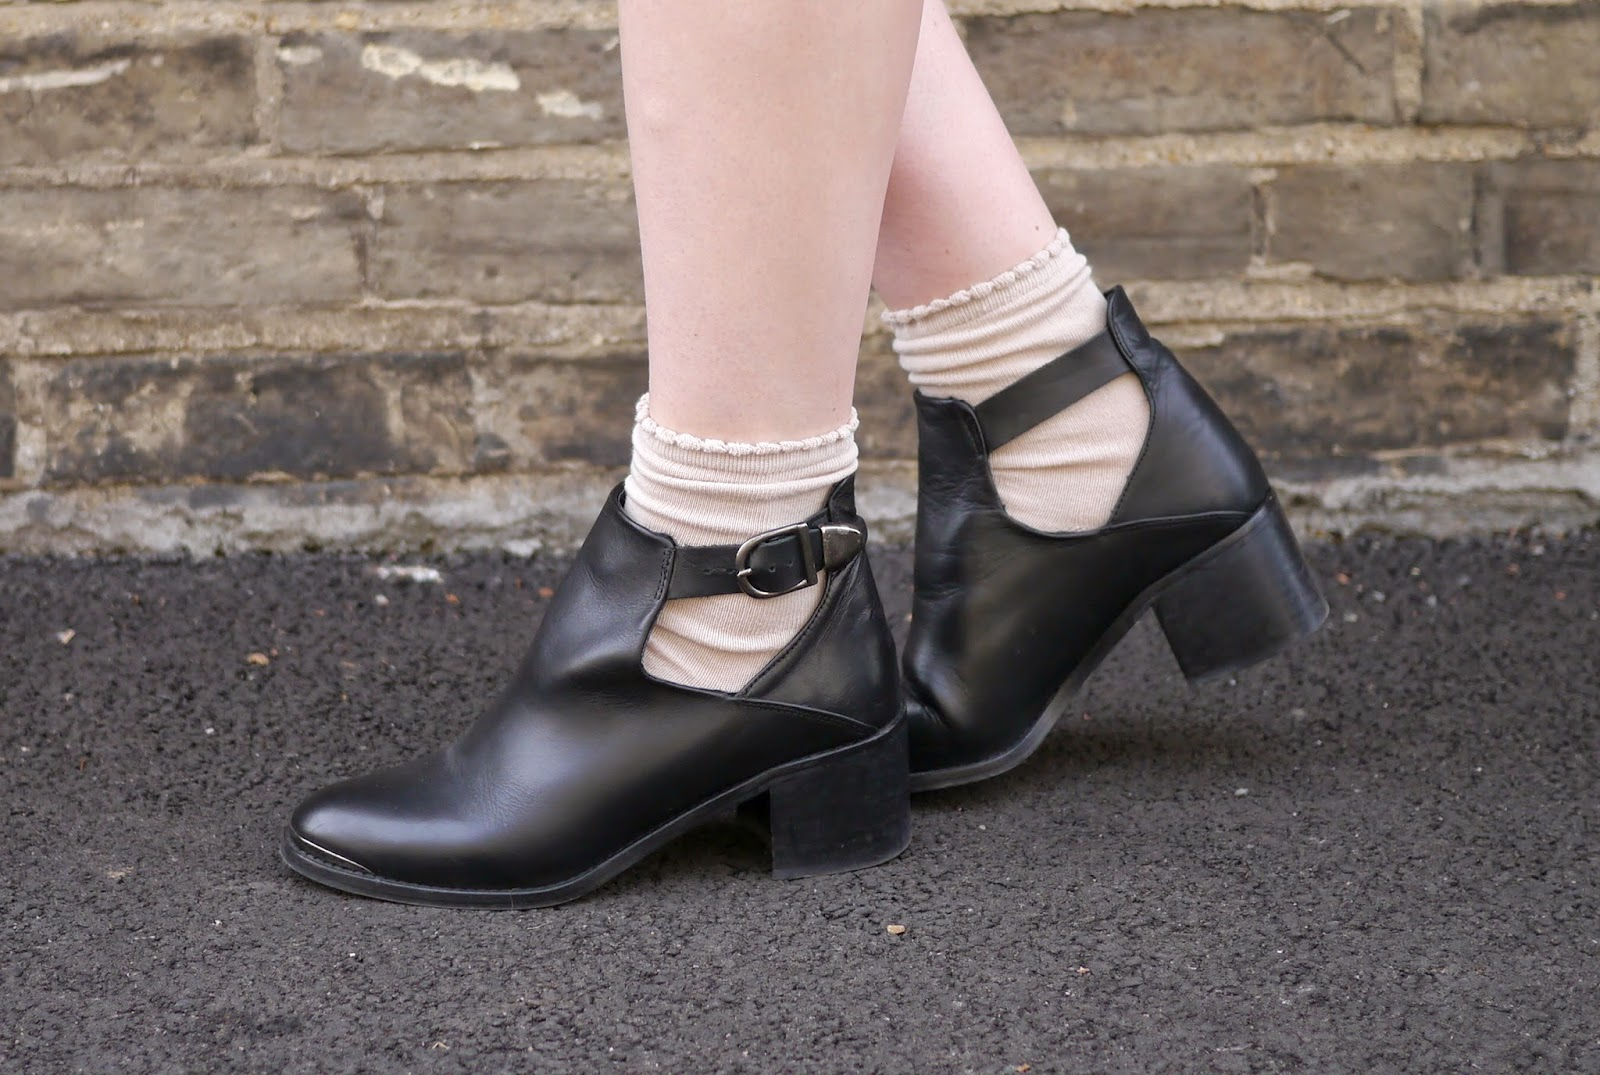 Topshop Cut Out Buckle Ankle Boots with socks